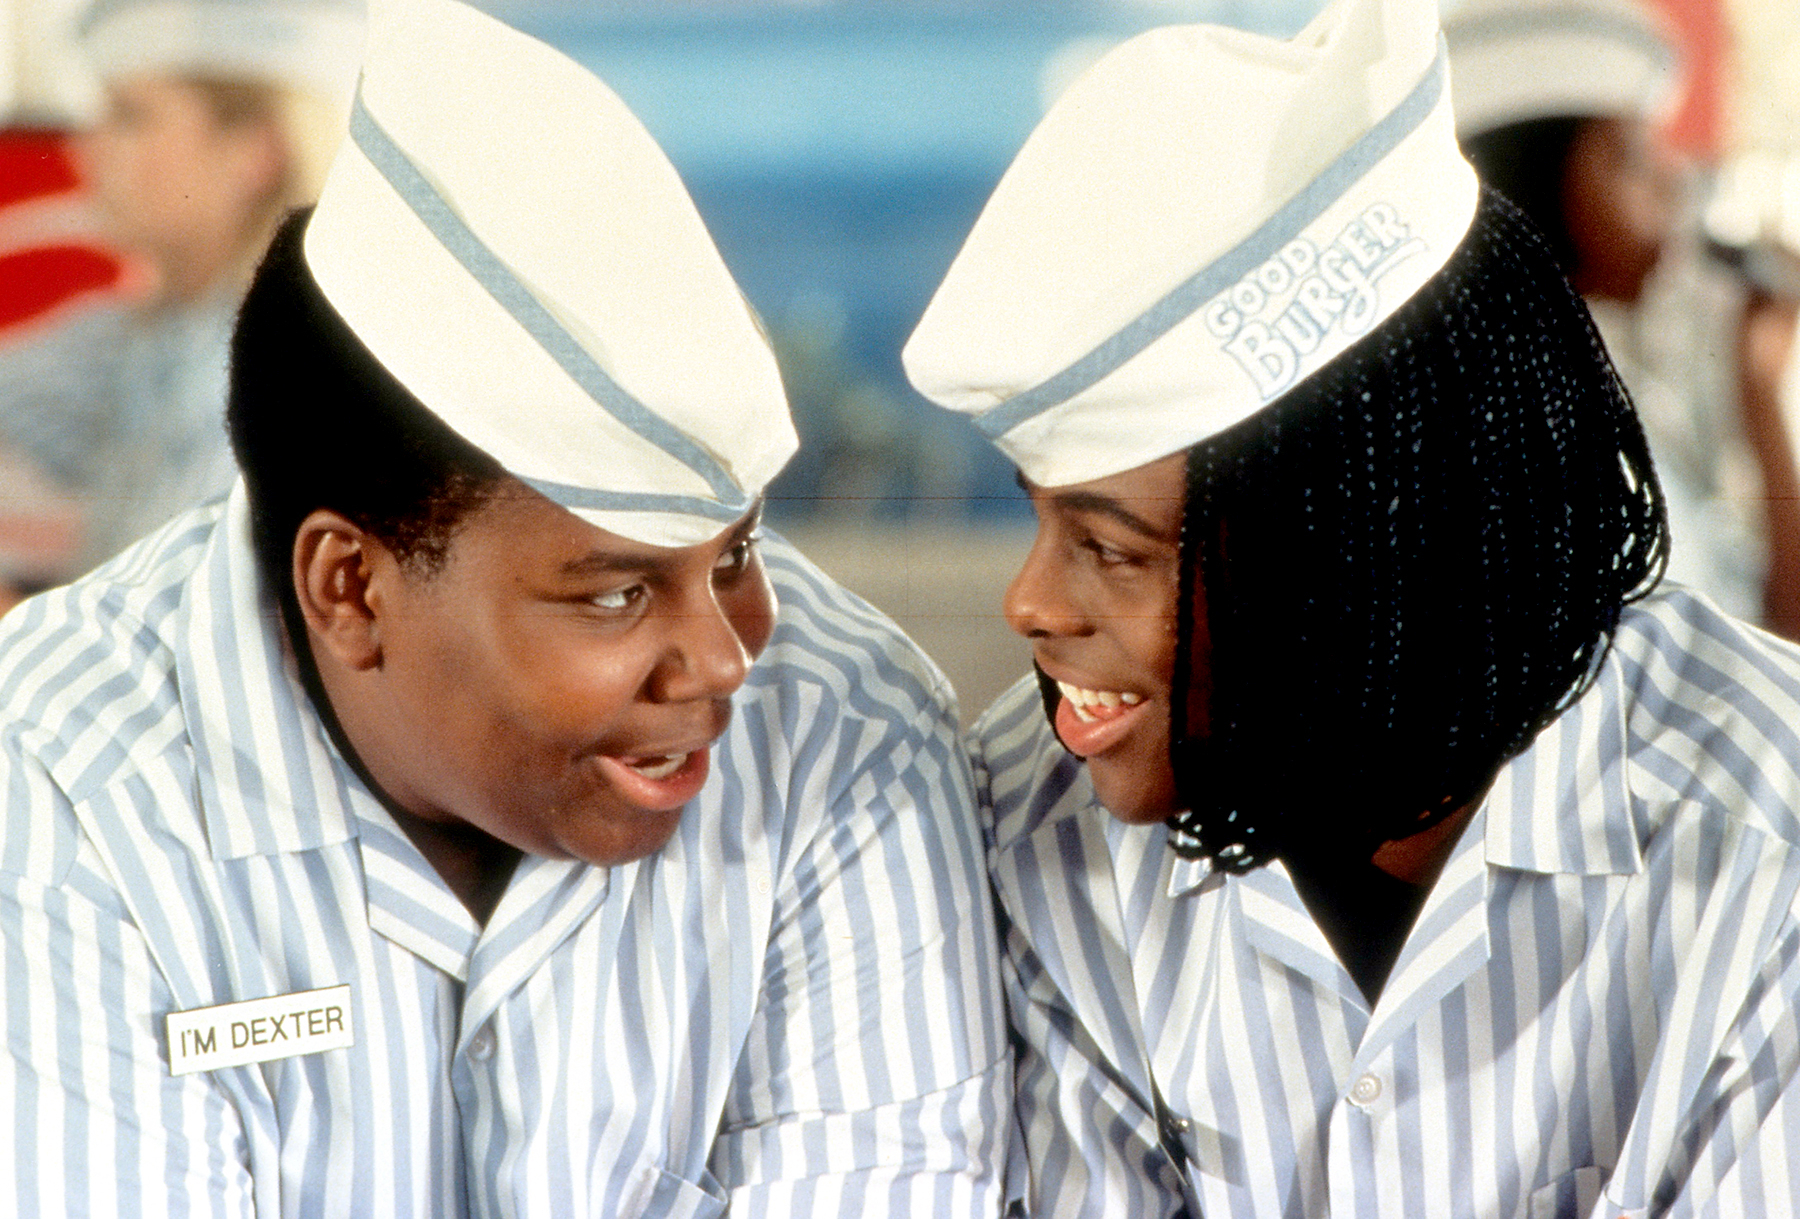 Kenan Thompson and Kel Mitchell smiling in a scene from the film 'Good Burger', 1997.